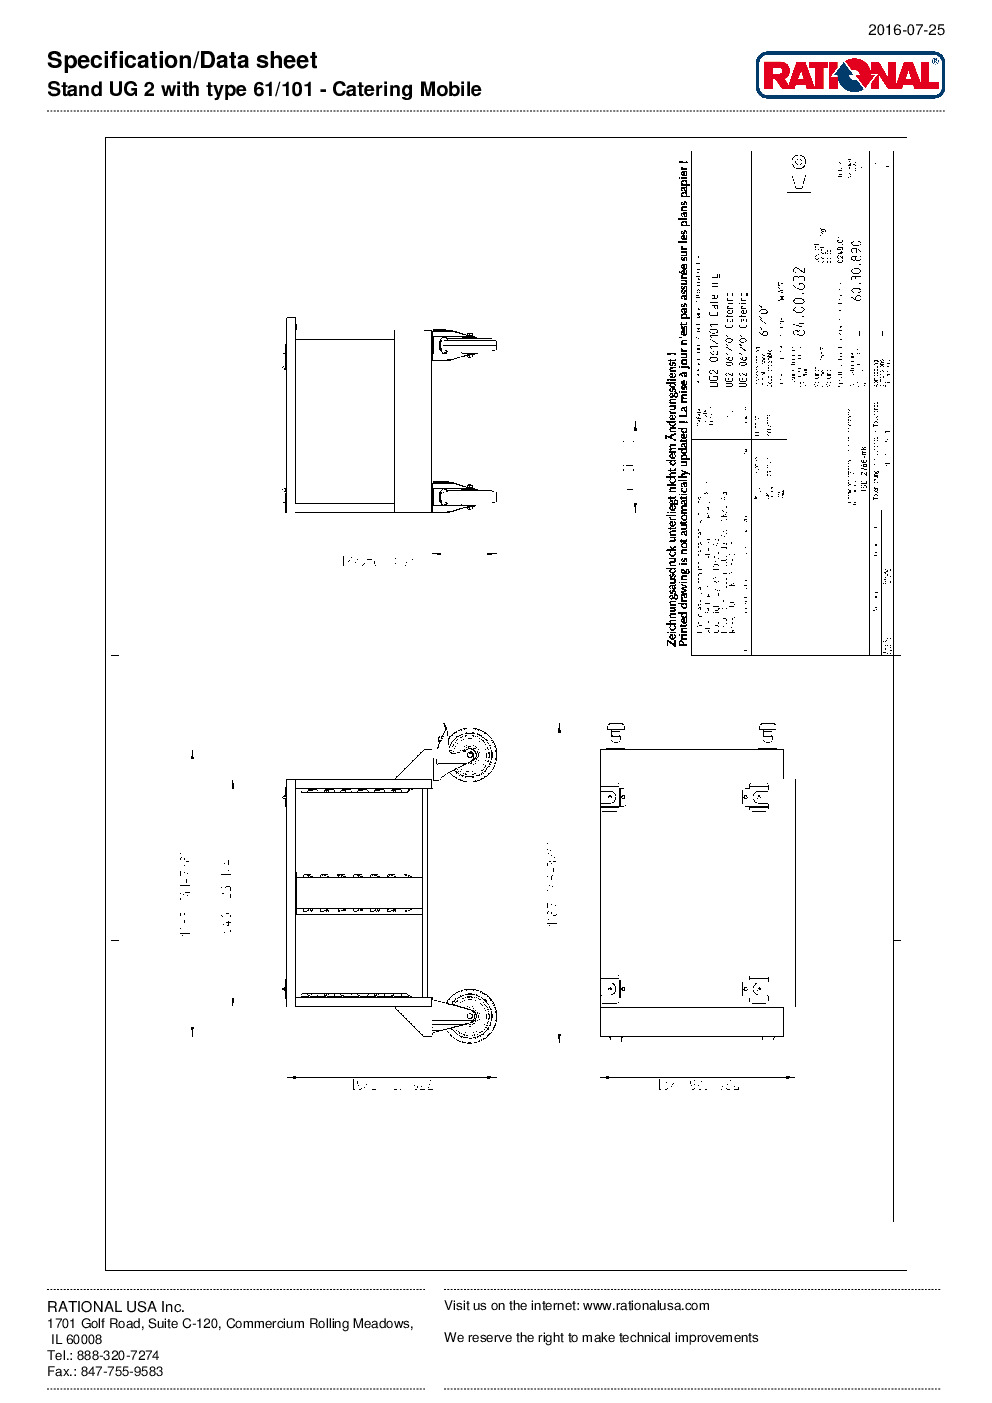 RATIONAL 60.30.890 Oven Equipment Stand